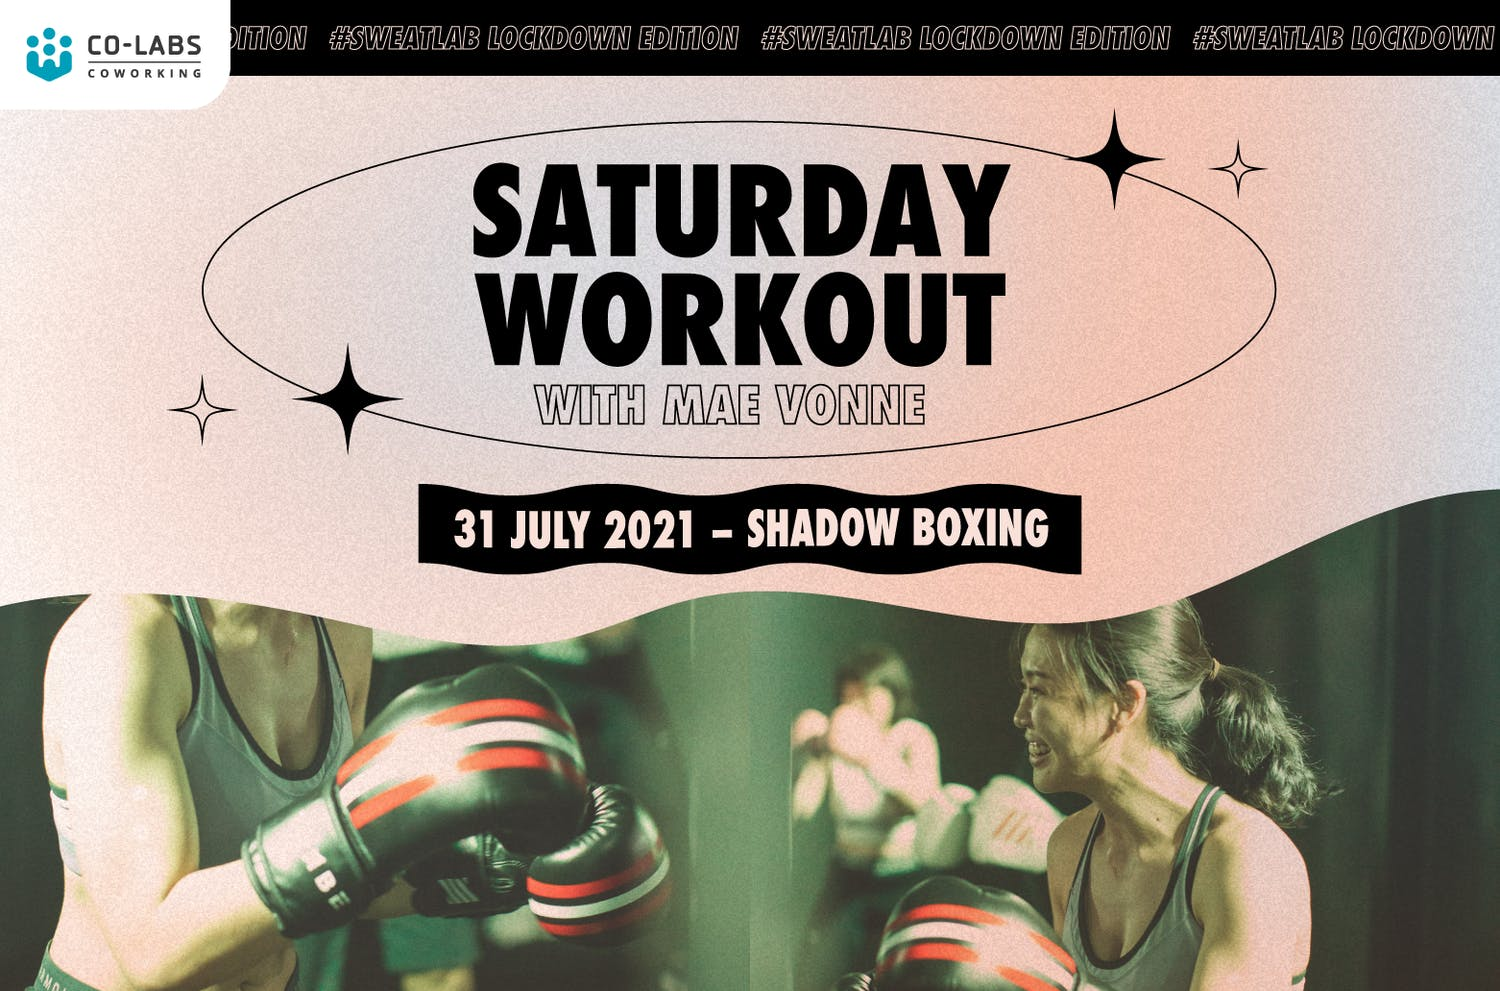 #SweatLab | Lockdown Edition: Saturday Workout with Mae Vonne (Shadow Boxing)